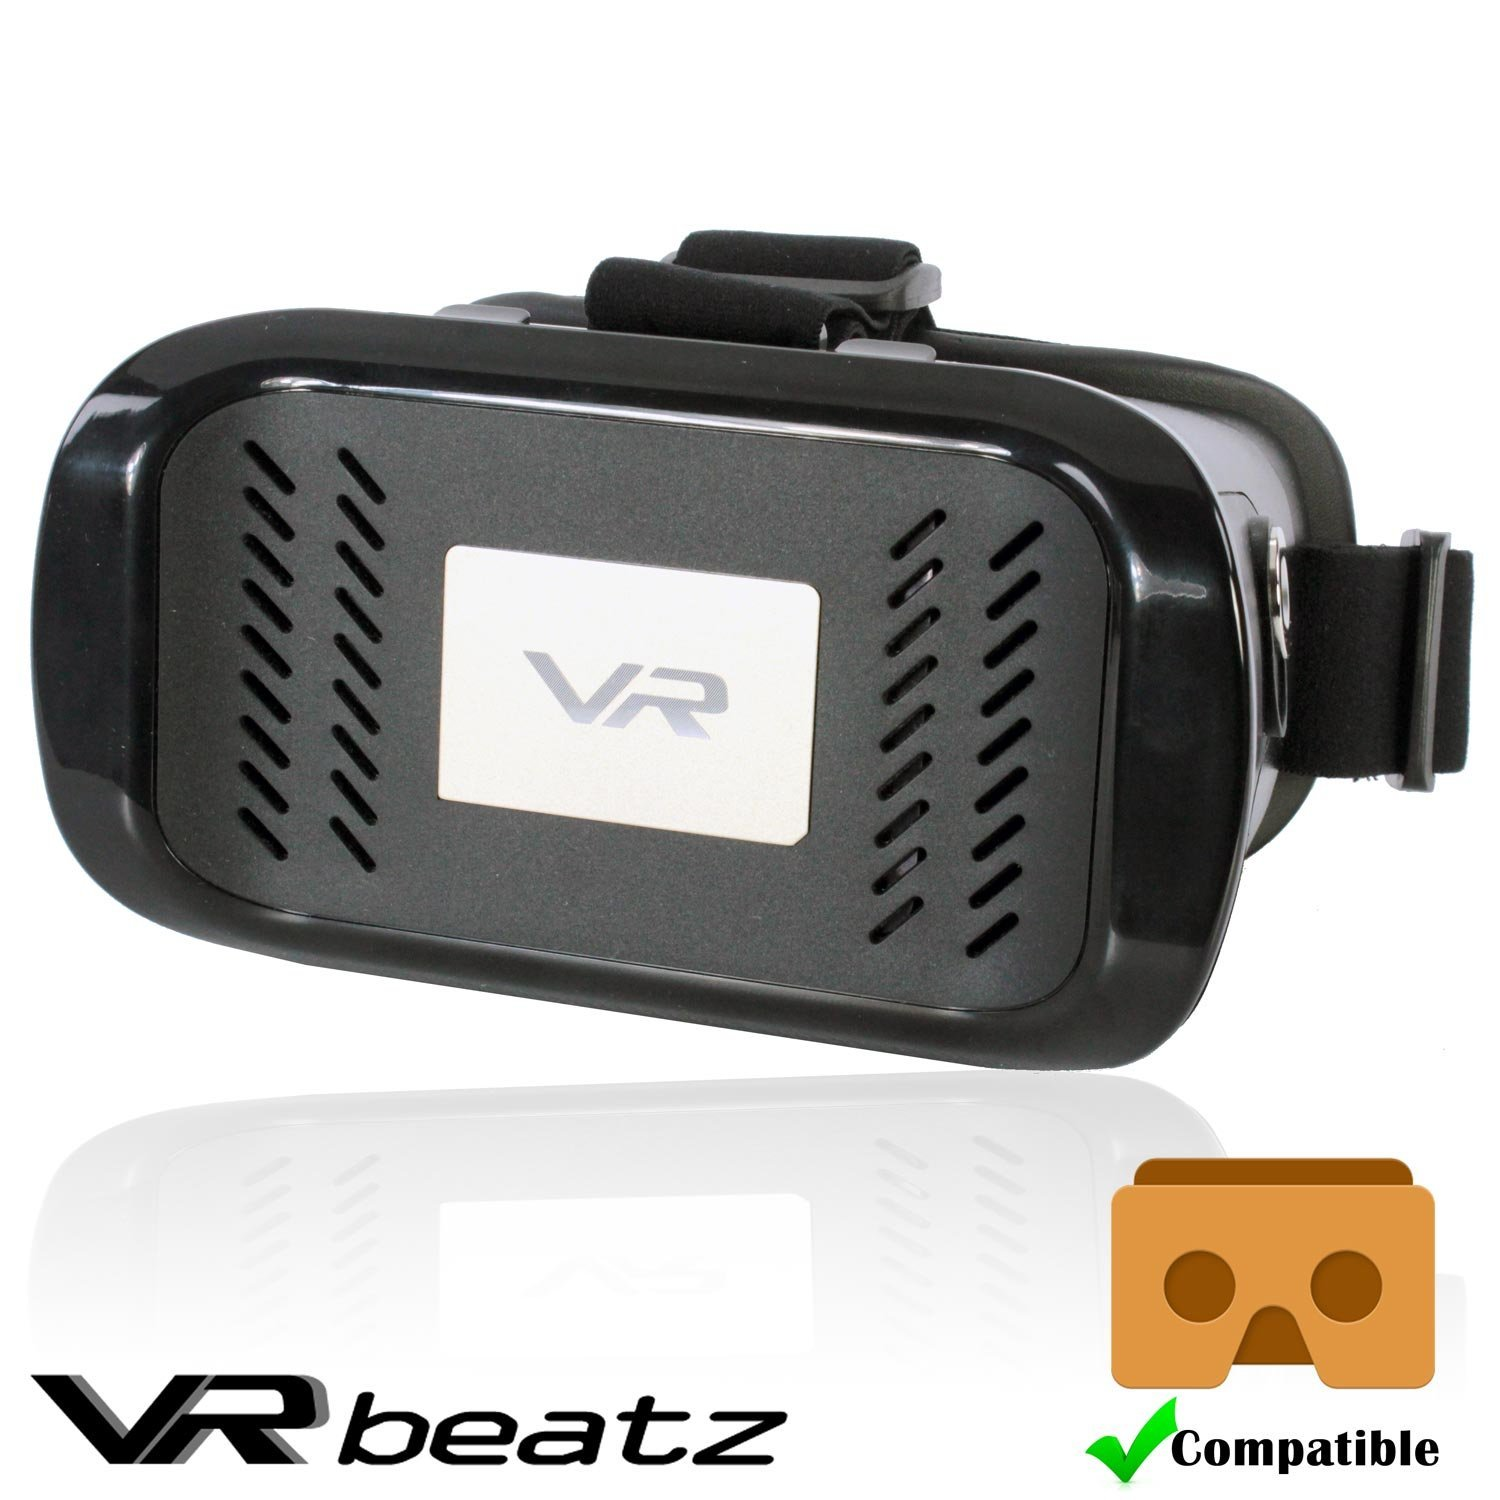 VR Headset Virtual Reality Goggles Glasses by VR beatz